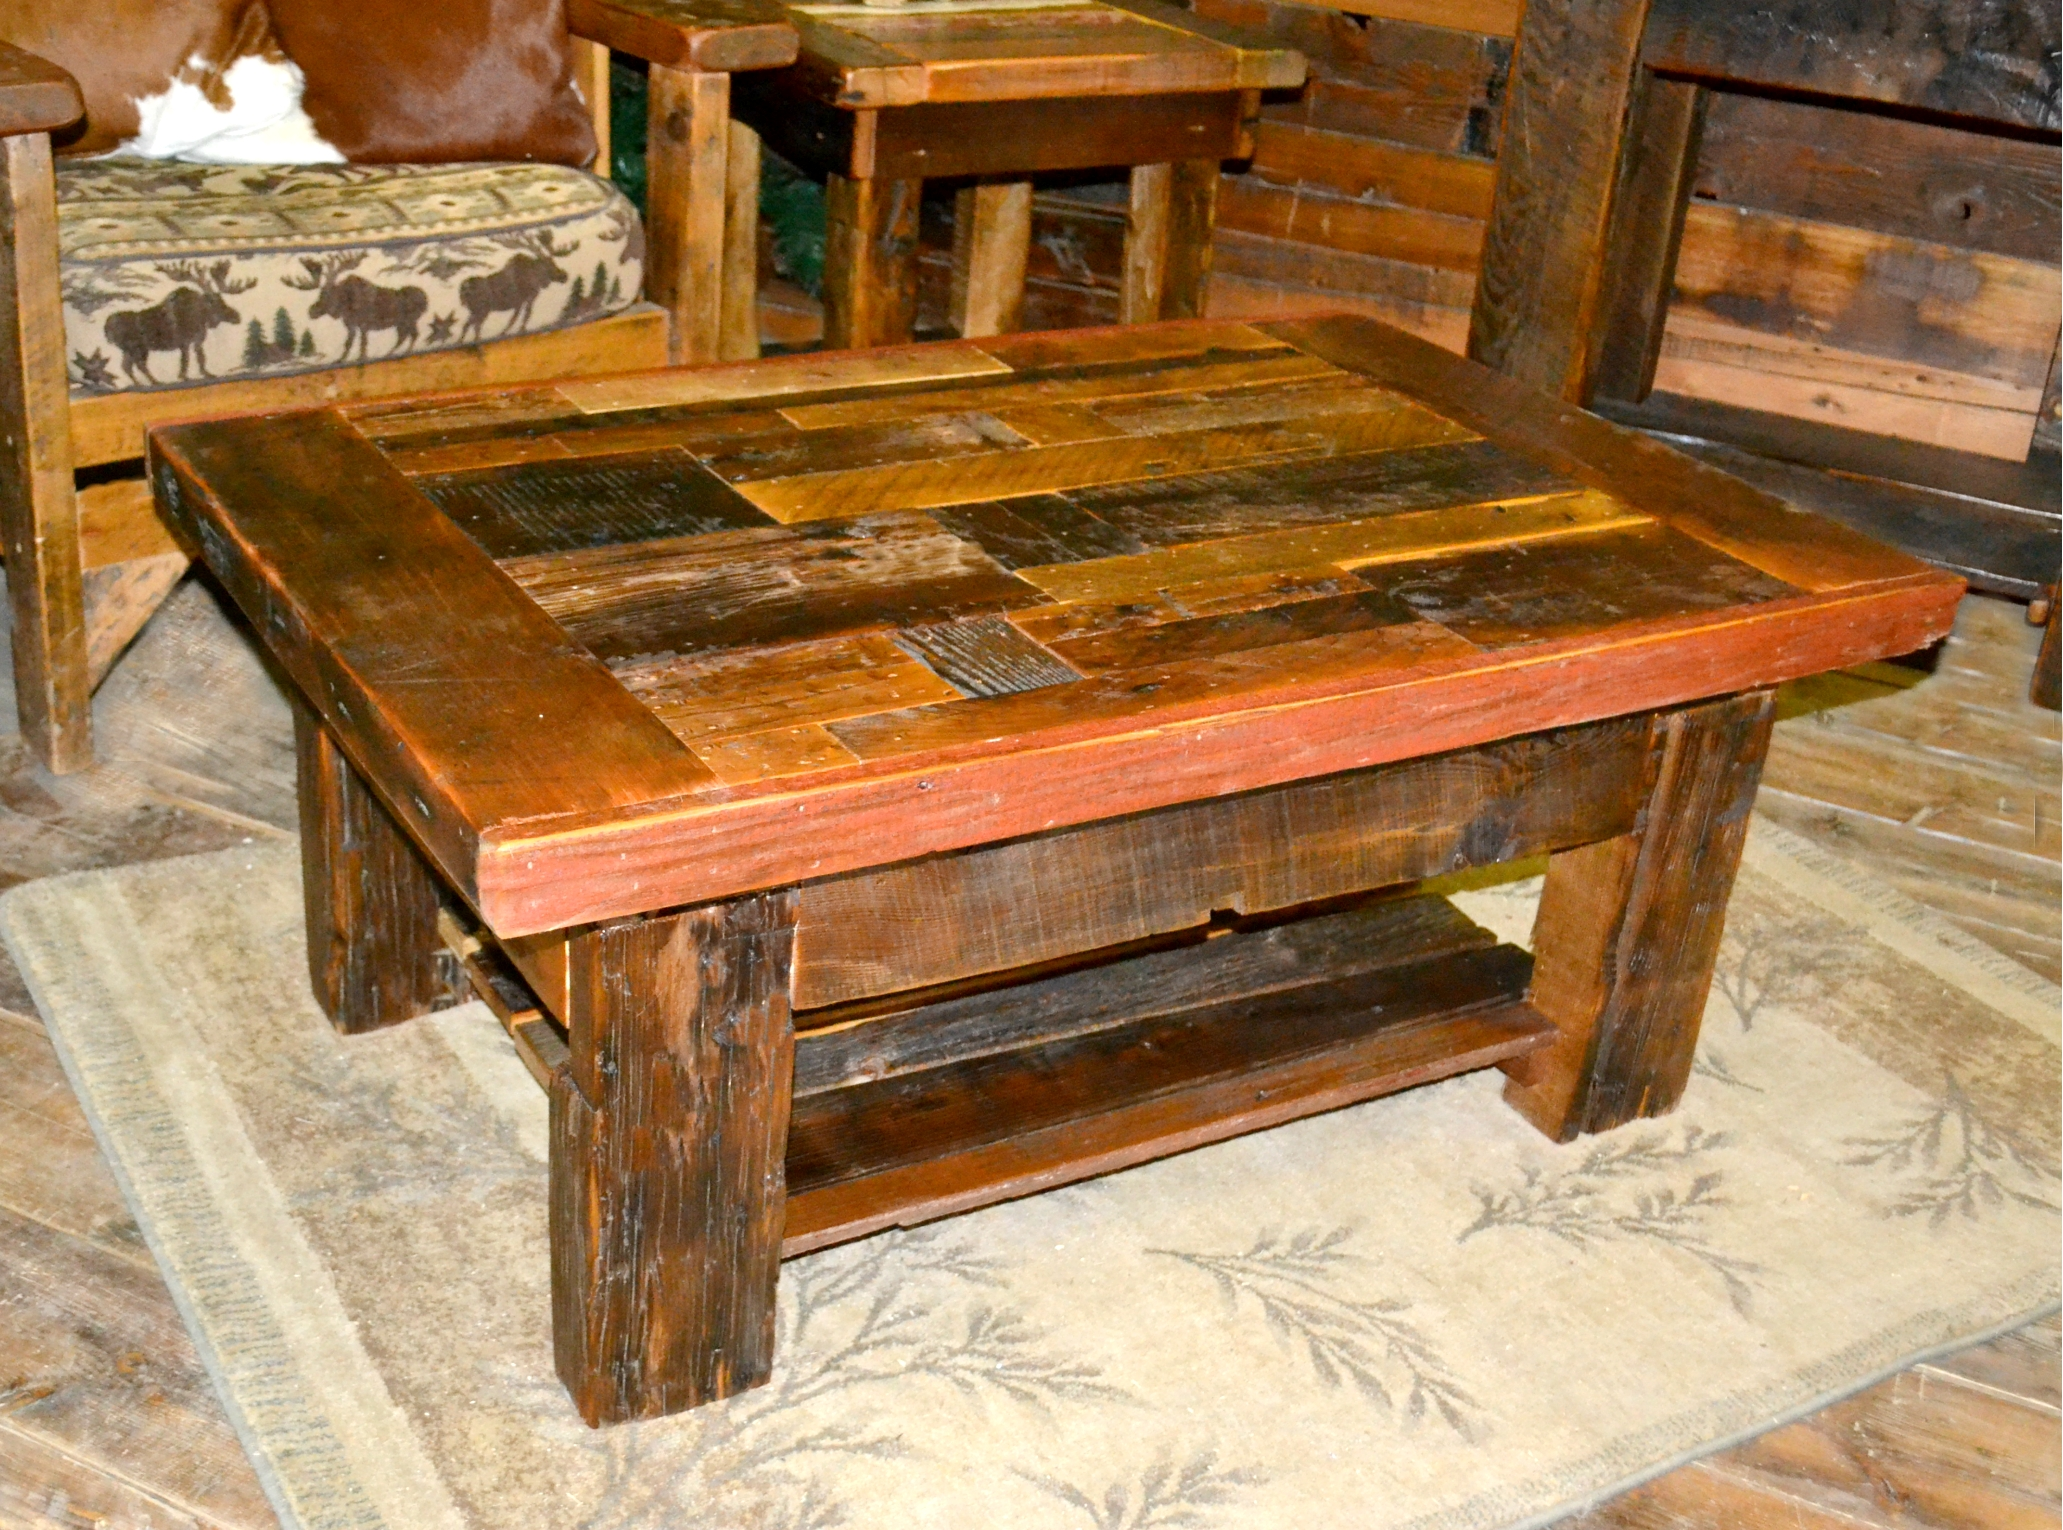 Collage Barnwood Coffee Table. Collage Barnwood Coffee Table   Rustic Furniture Mall by Timber Creek